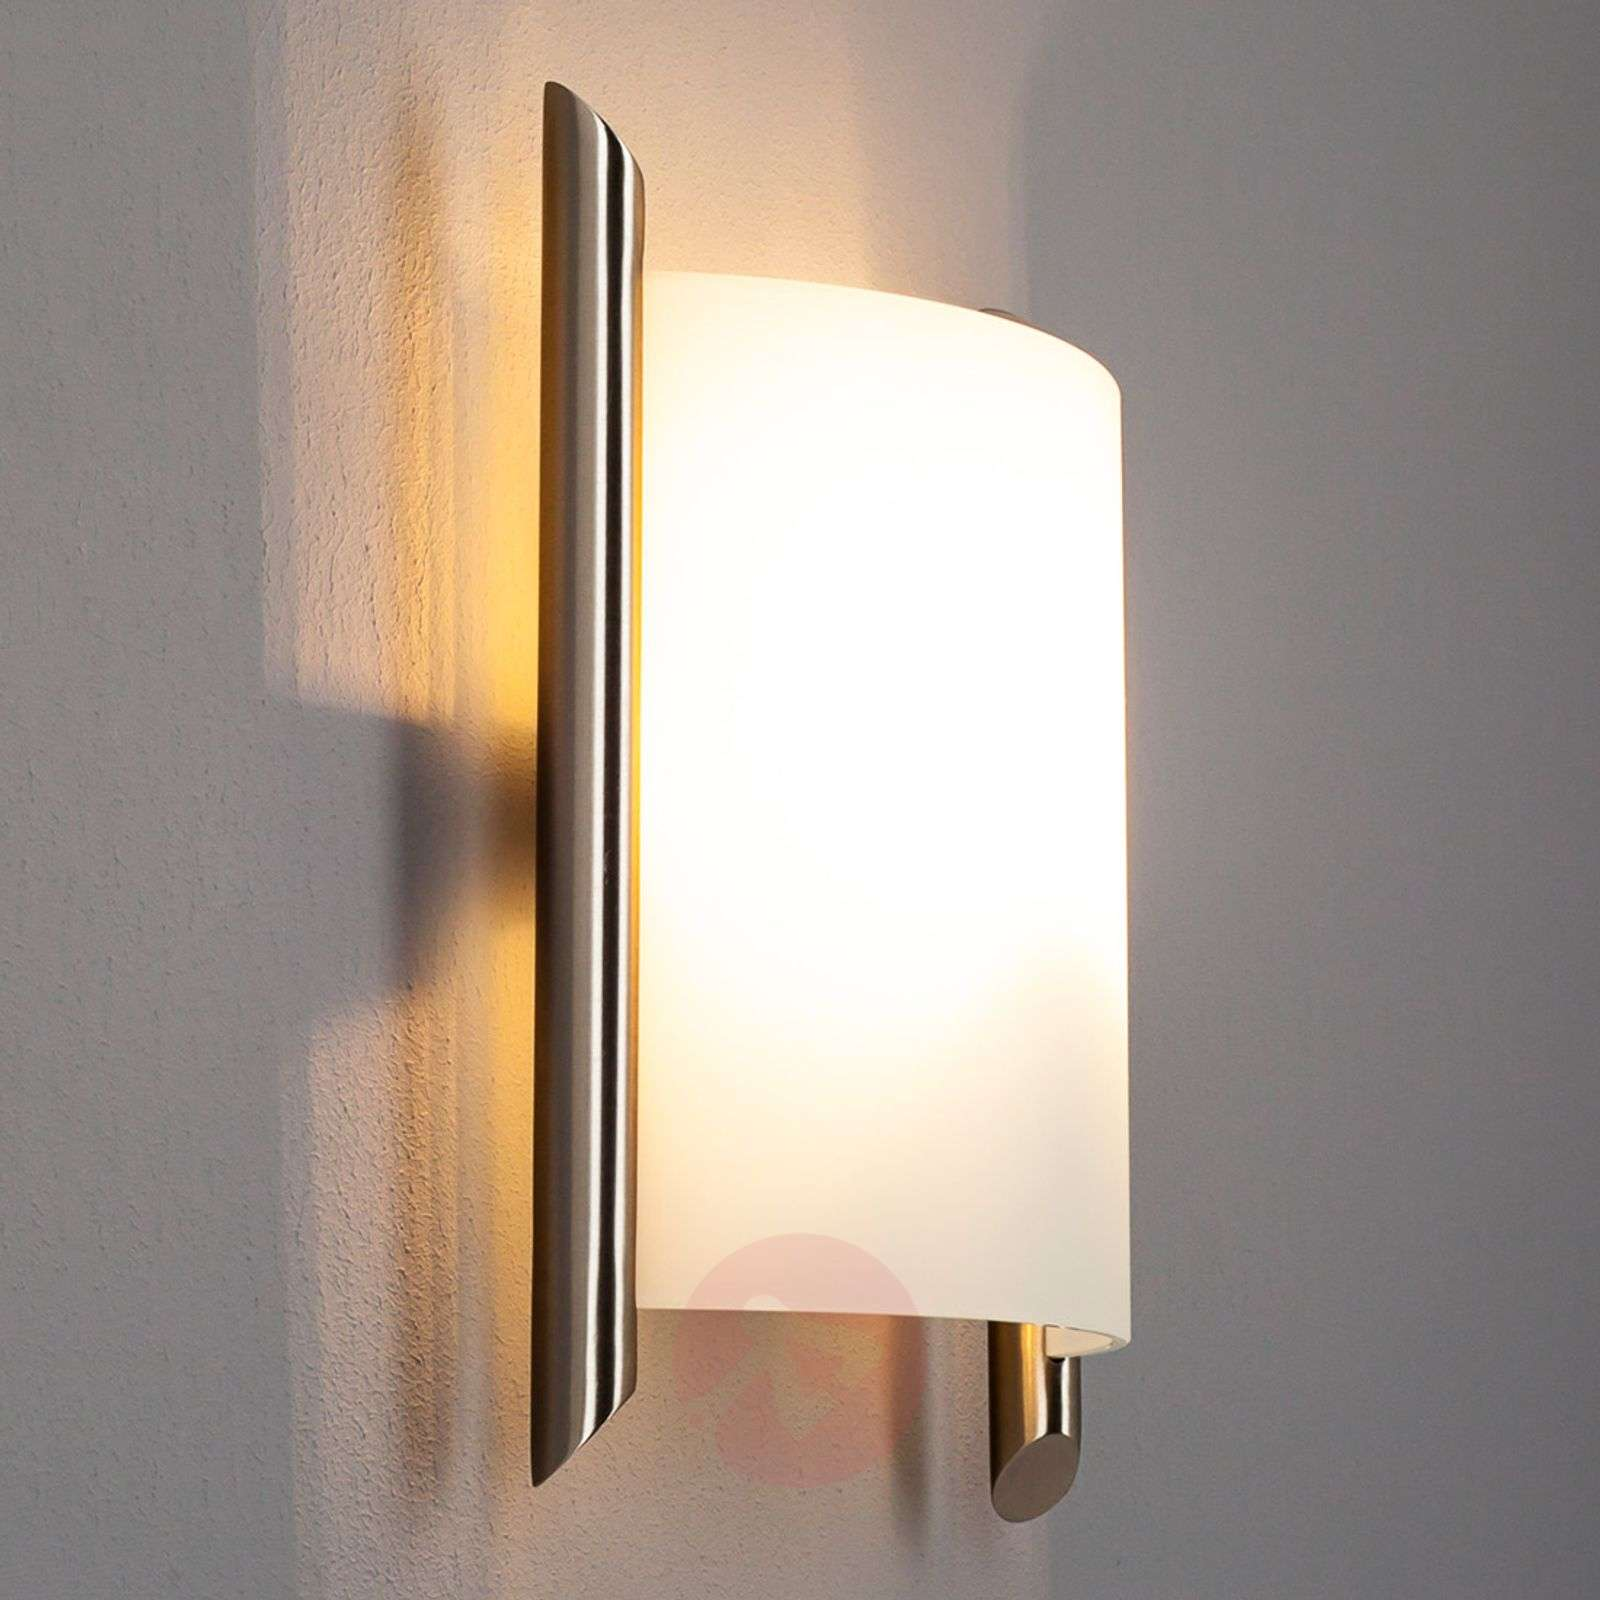 Filippa glass wall lamp satin finished nickel lights filippa glass wall lamp satin finished nickel 9633014 01 mozeypictures Image collections